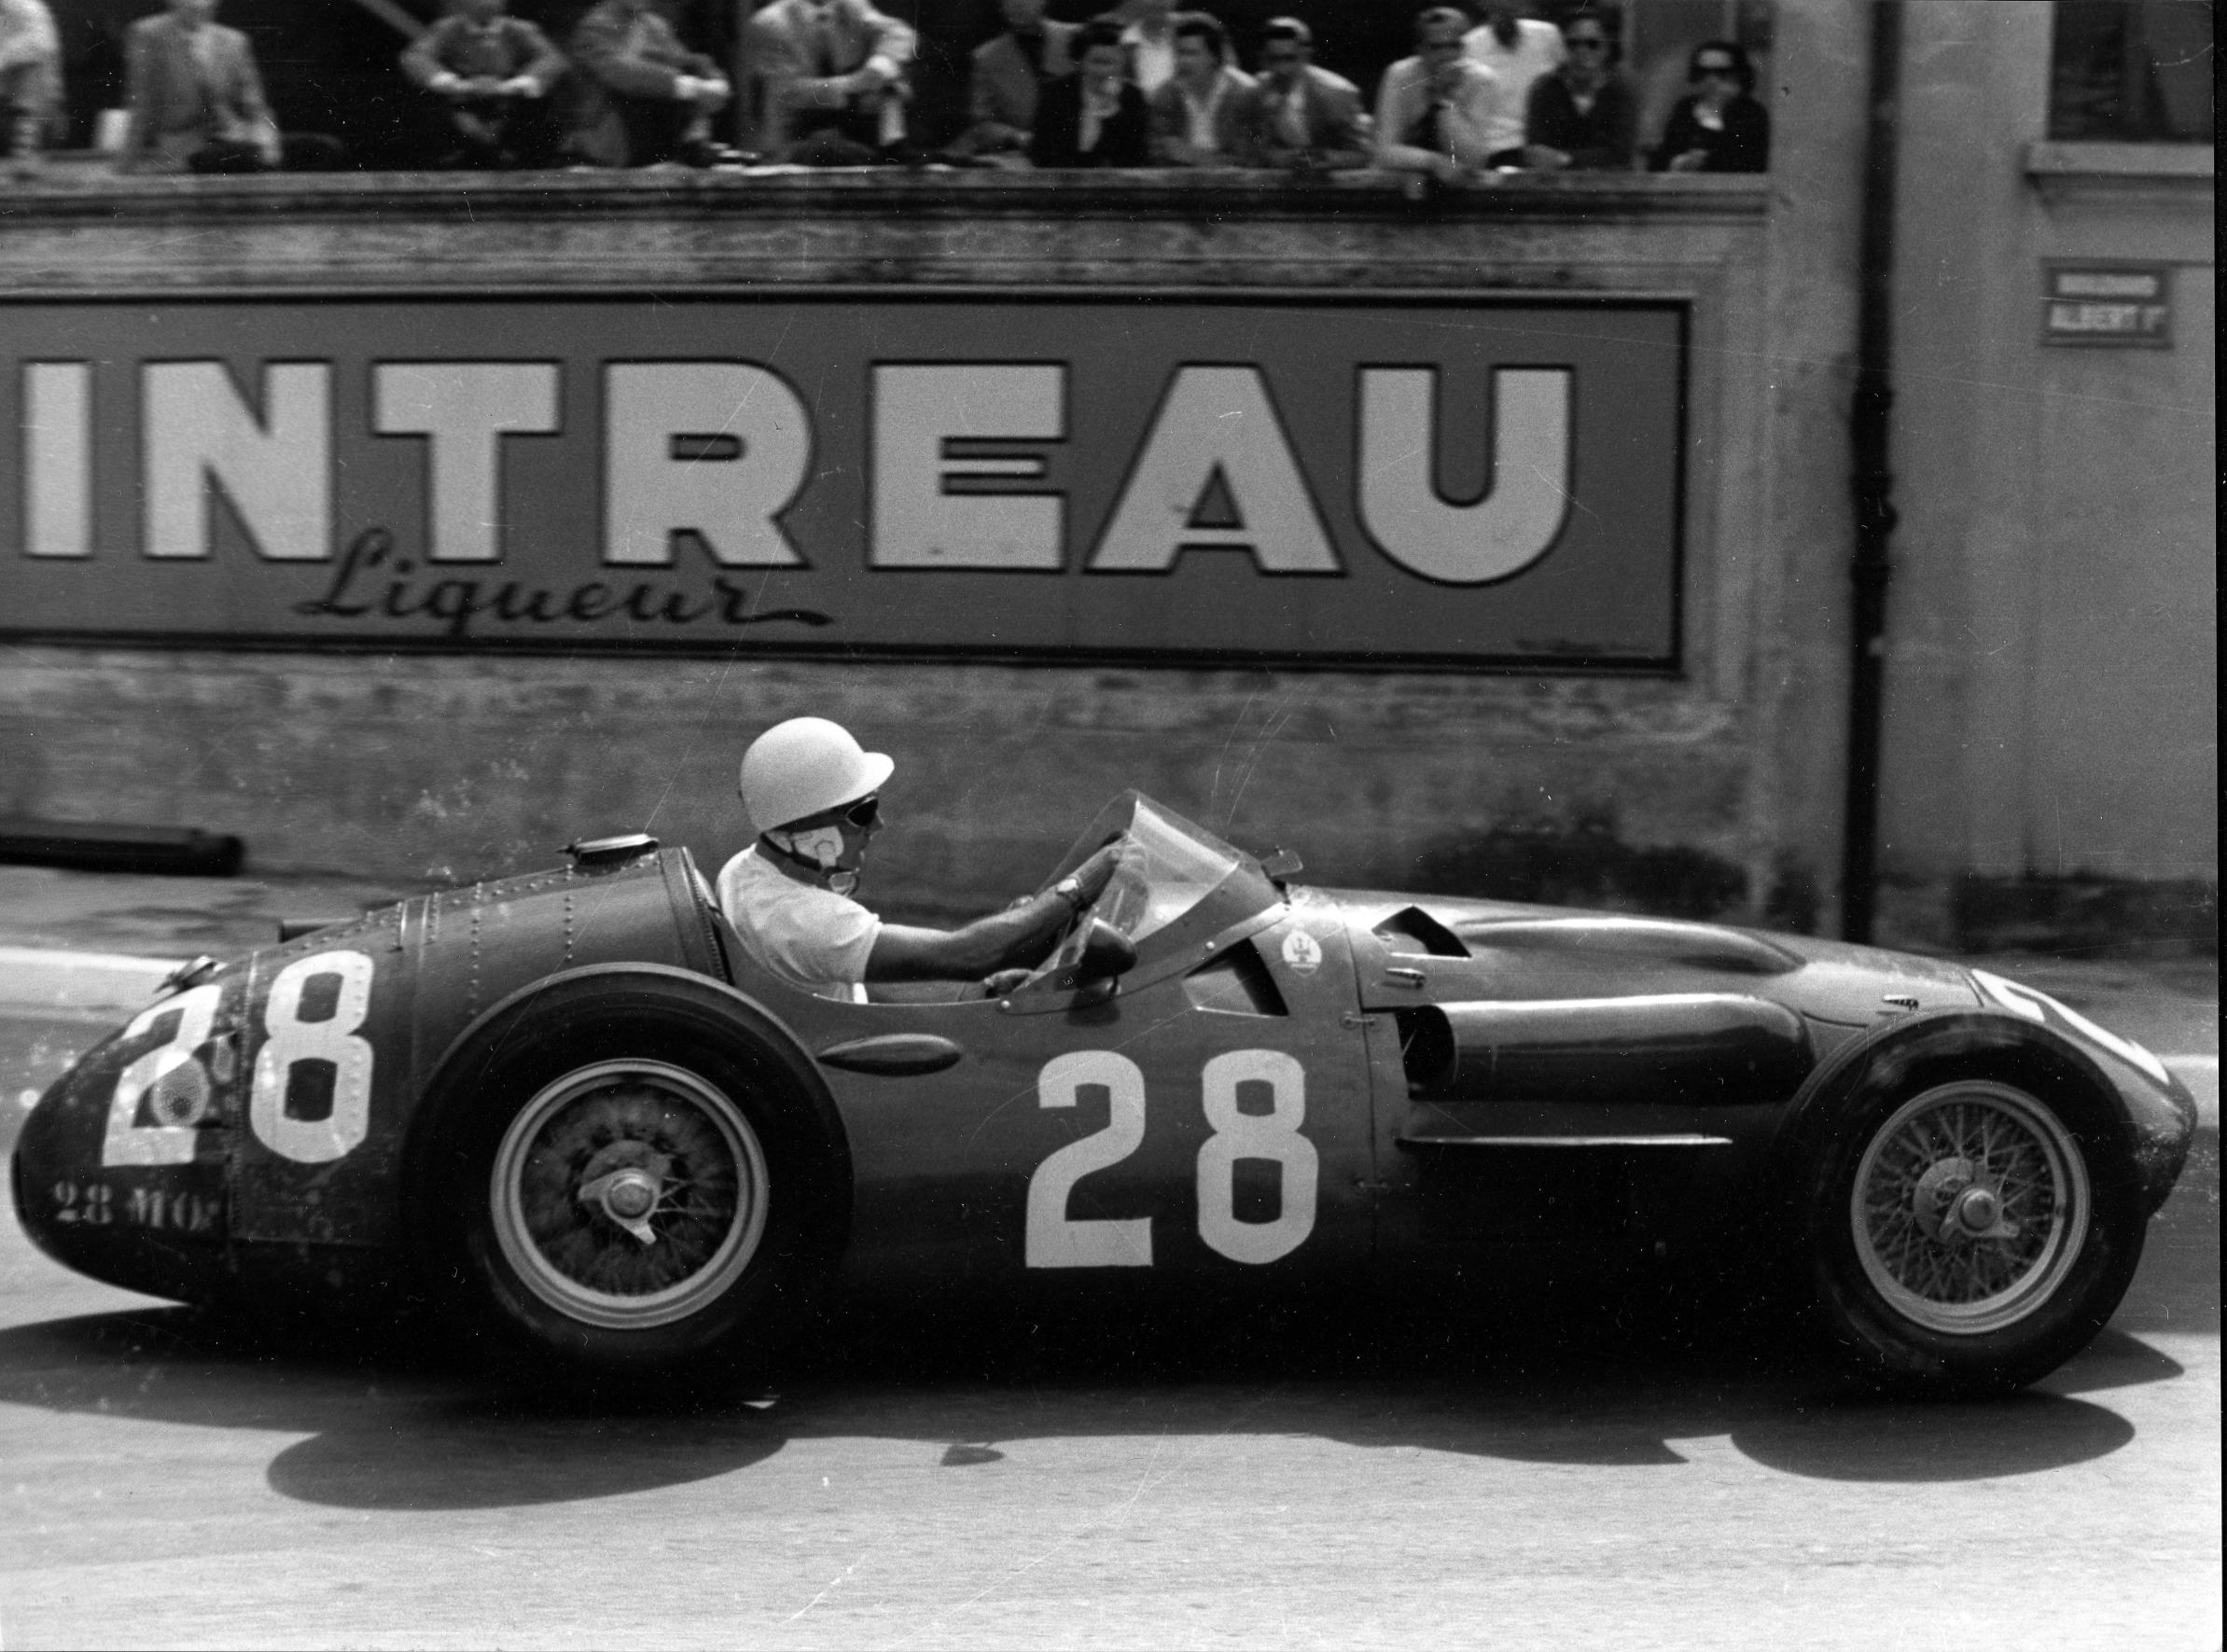 Maserati dedicates MC20 to Sir Stirling Moss passing at the age of 90. His legendary victory at Monaco F1 Grand Prix on 13 May 1956 in Maserati 250F